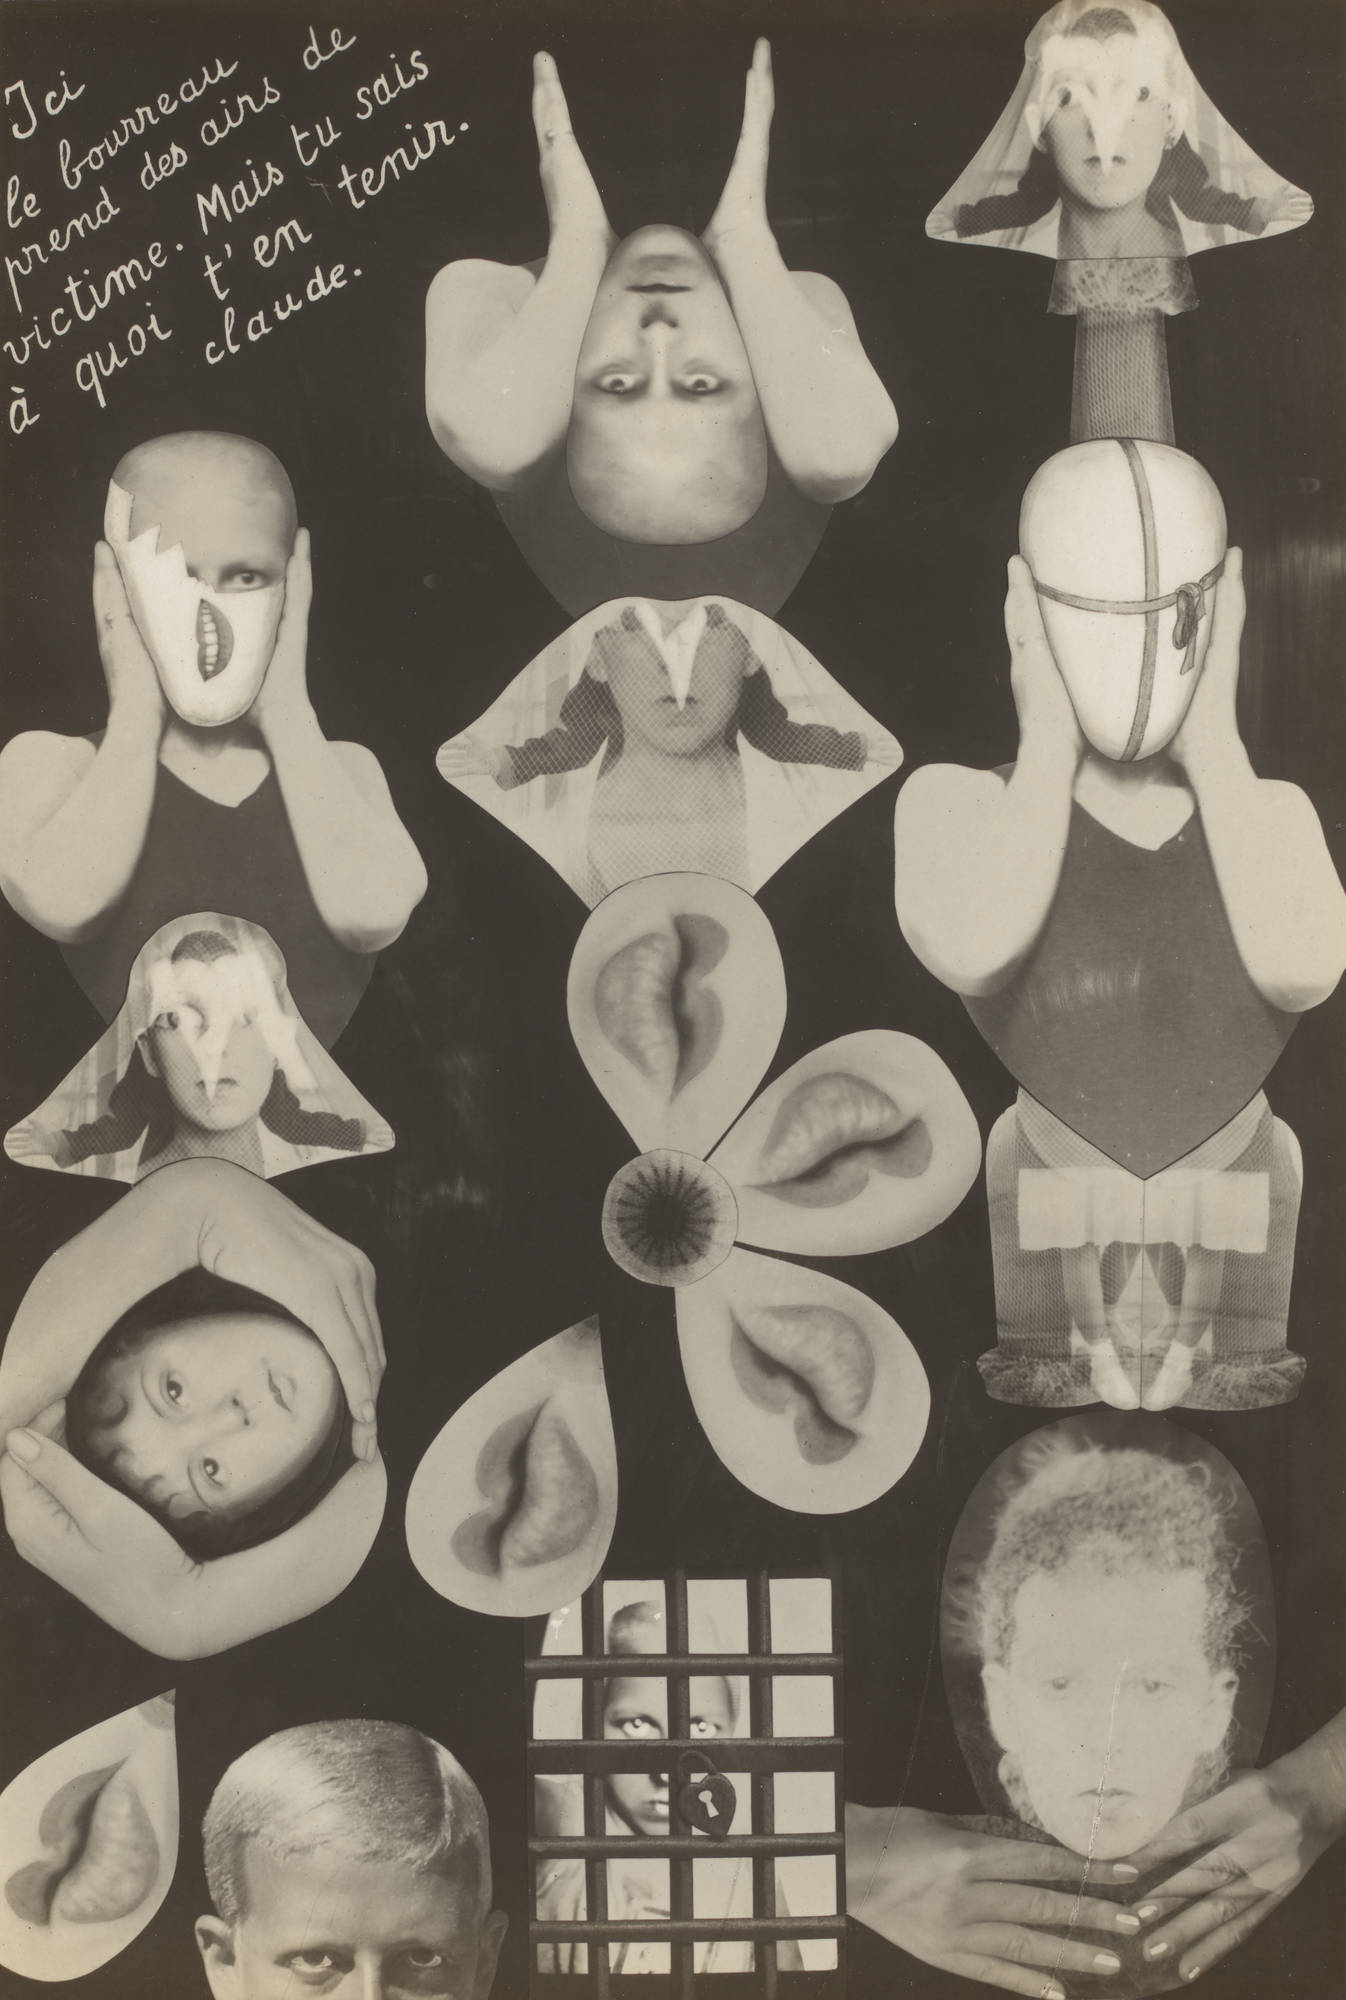 "Claude Cahun (Lucy Schwob), ""M.R.M (Sex)"" (c. 1929-30), Gelatin silver print, 6 × 4 inches (15.2 × 10.2 cm). The Museum of Modern Art, New York, Gift of Helen Kornblum in honor of Roxana Marcoci."